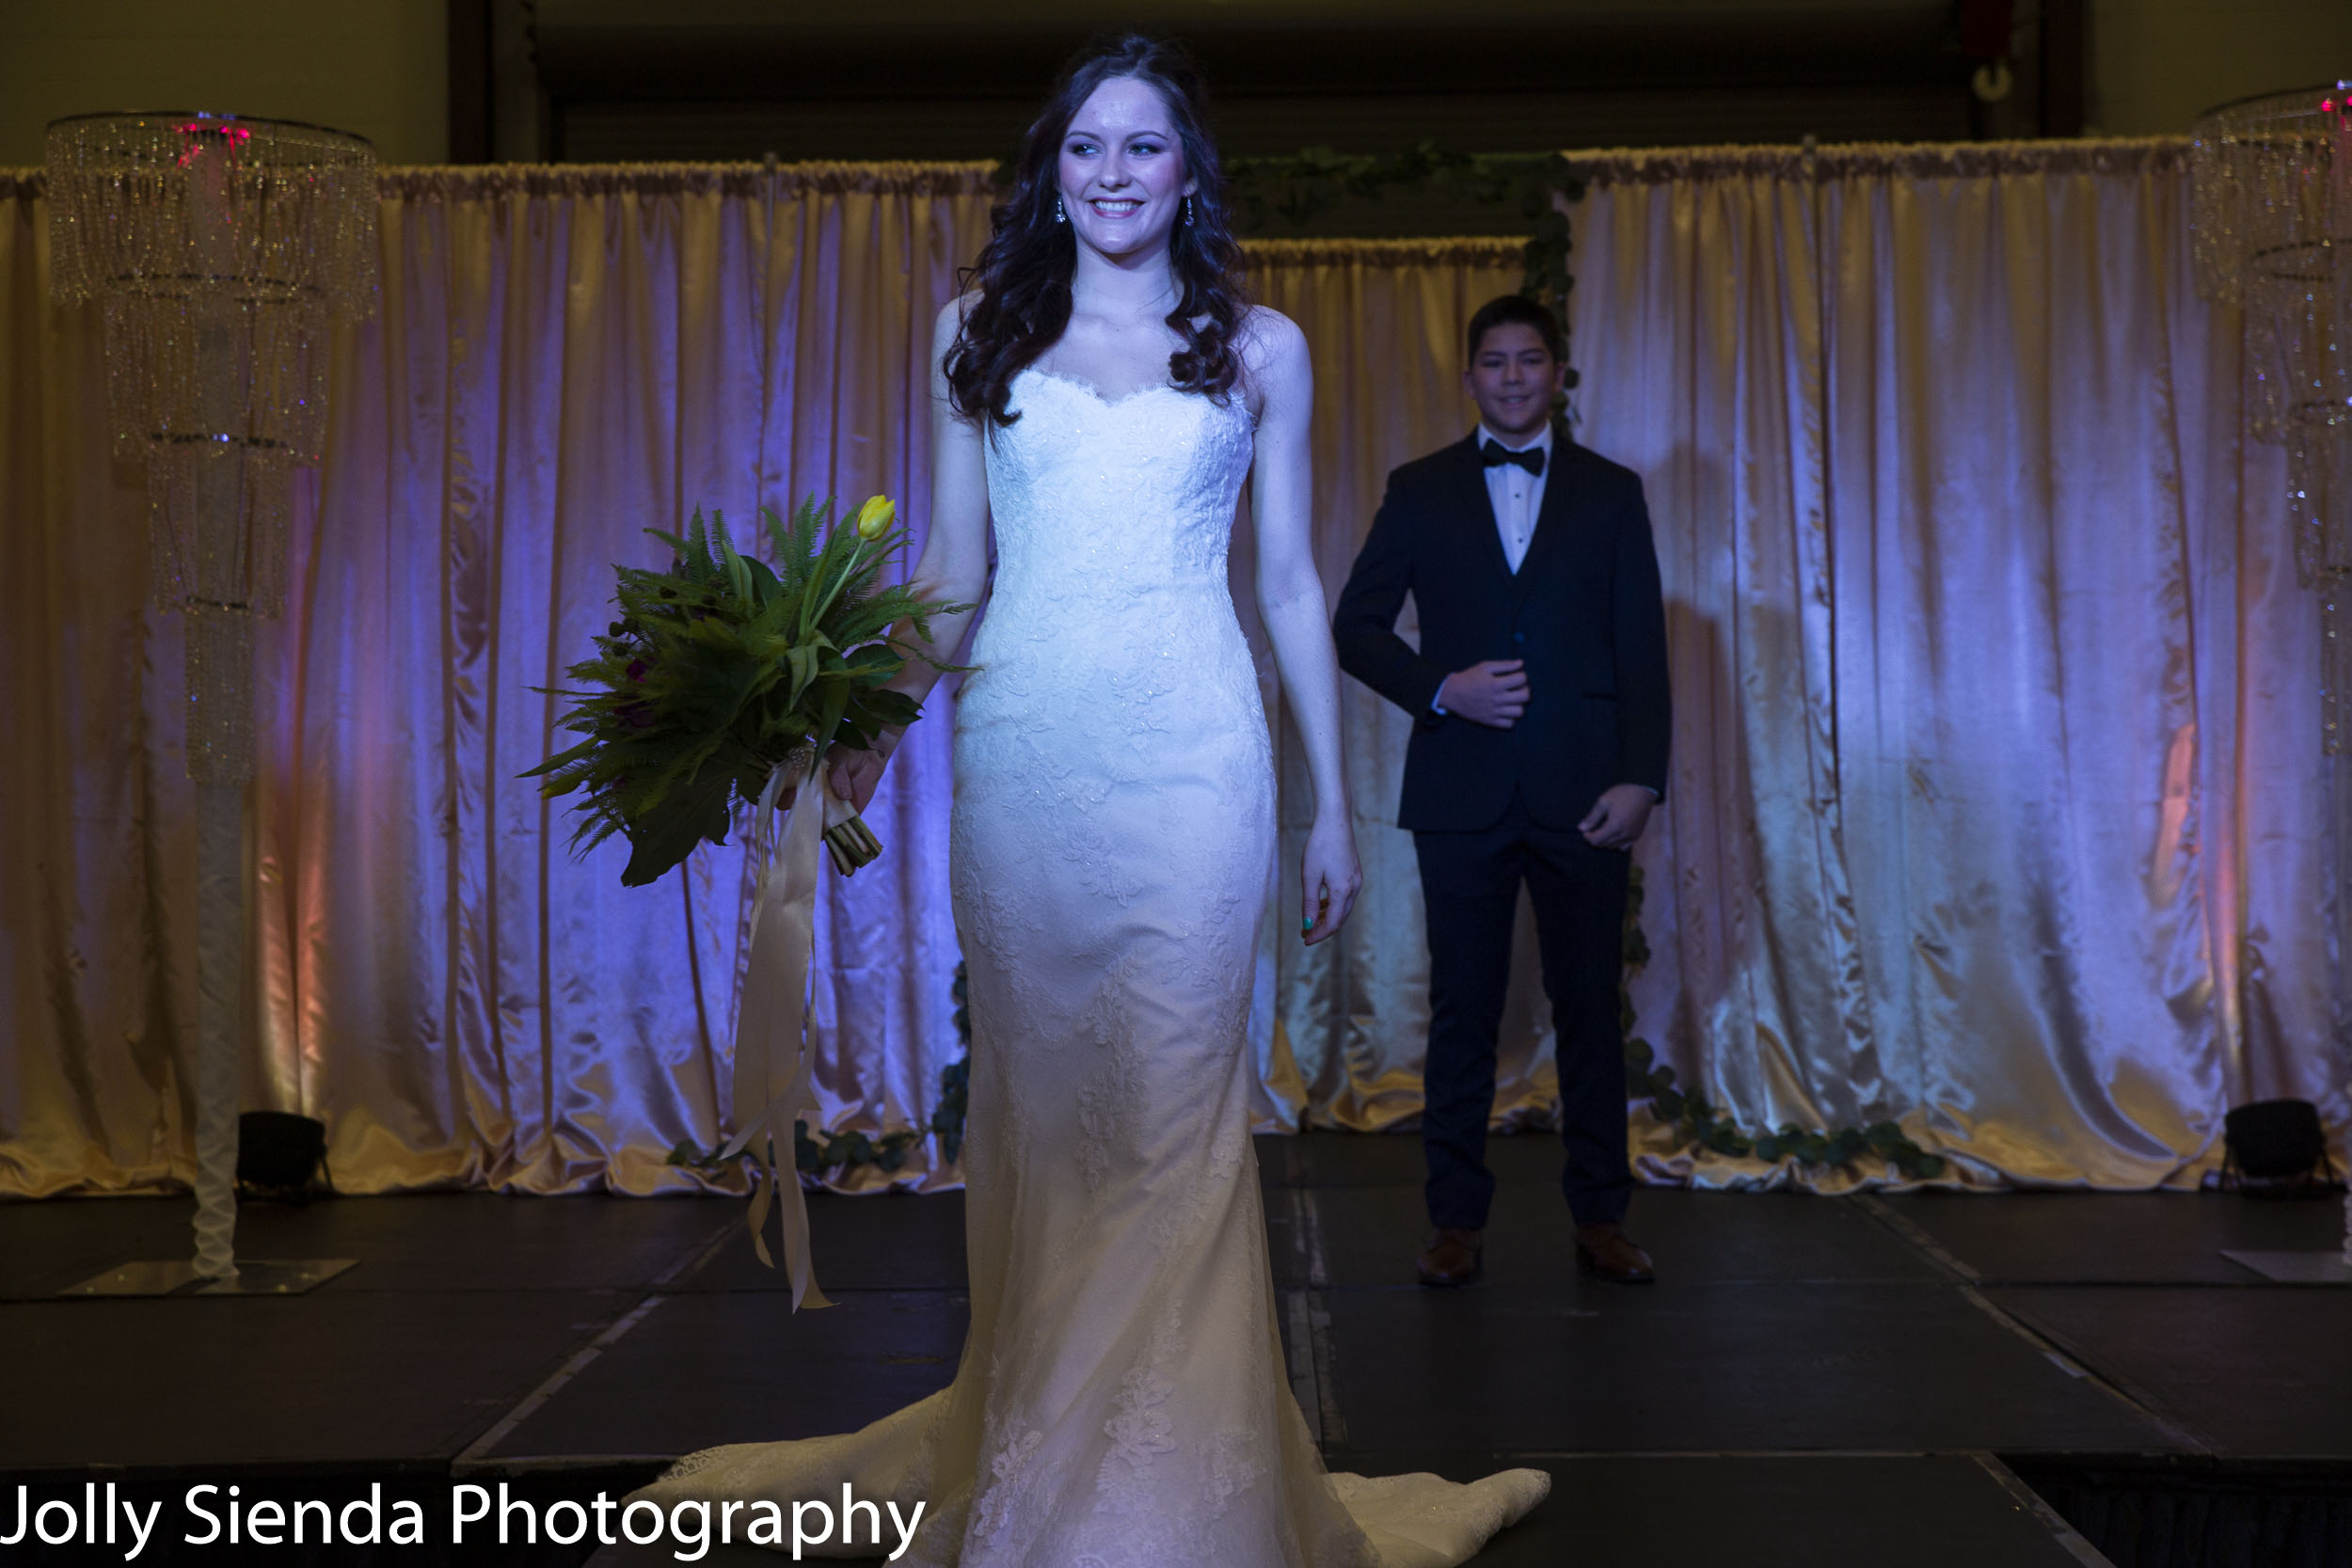 Wedding Fashion Show, Kitsap Wedding Expo 2019. Photo credit Jolly Sienda Photography